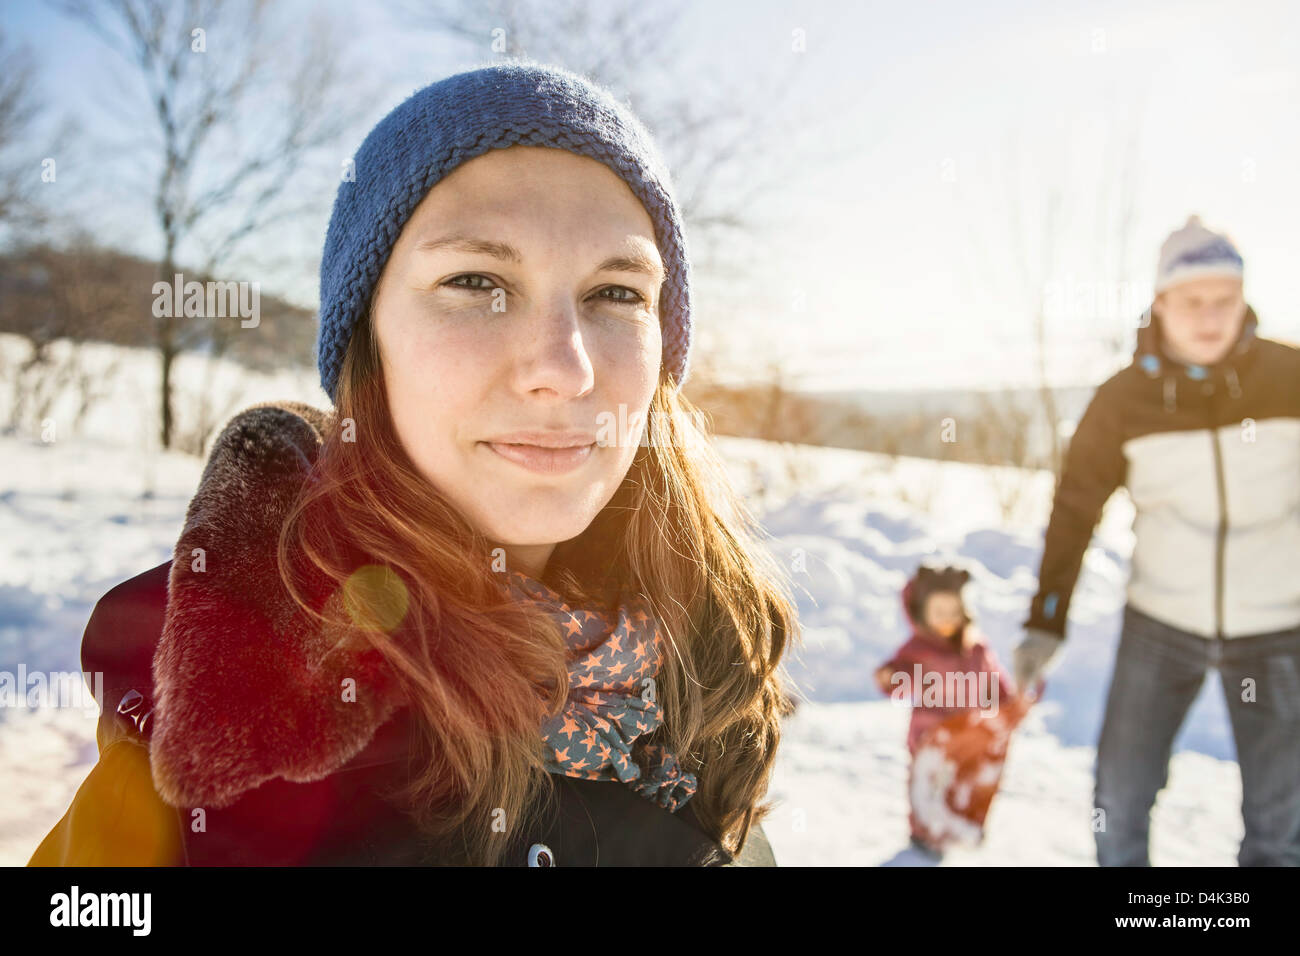 Woman walking with family in snow - Stock Image